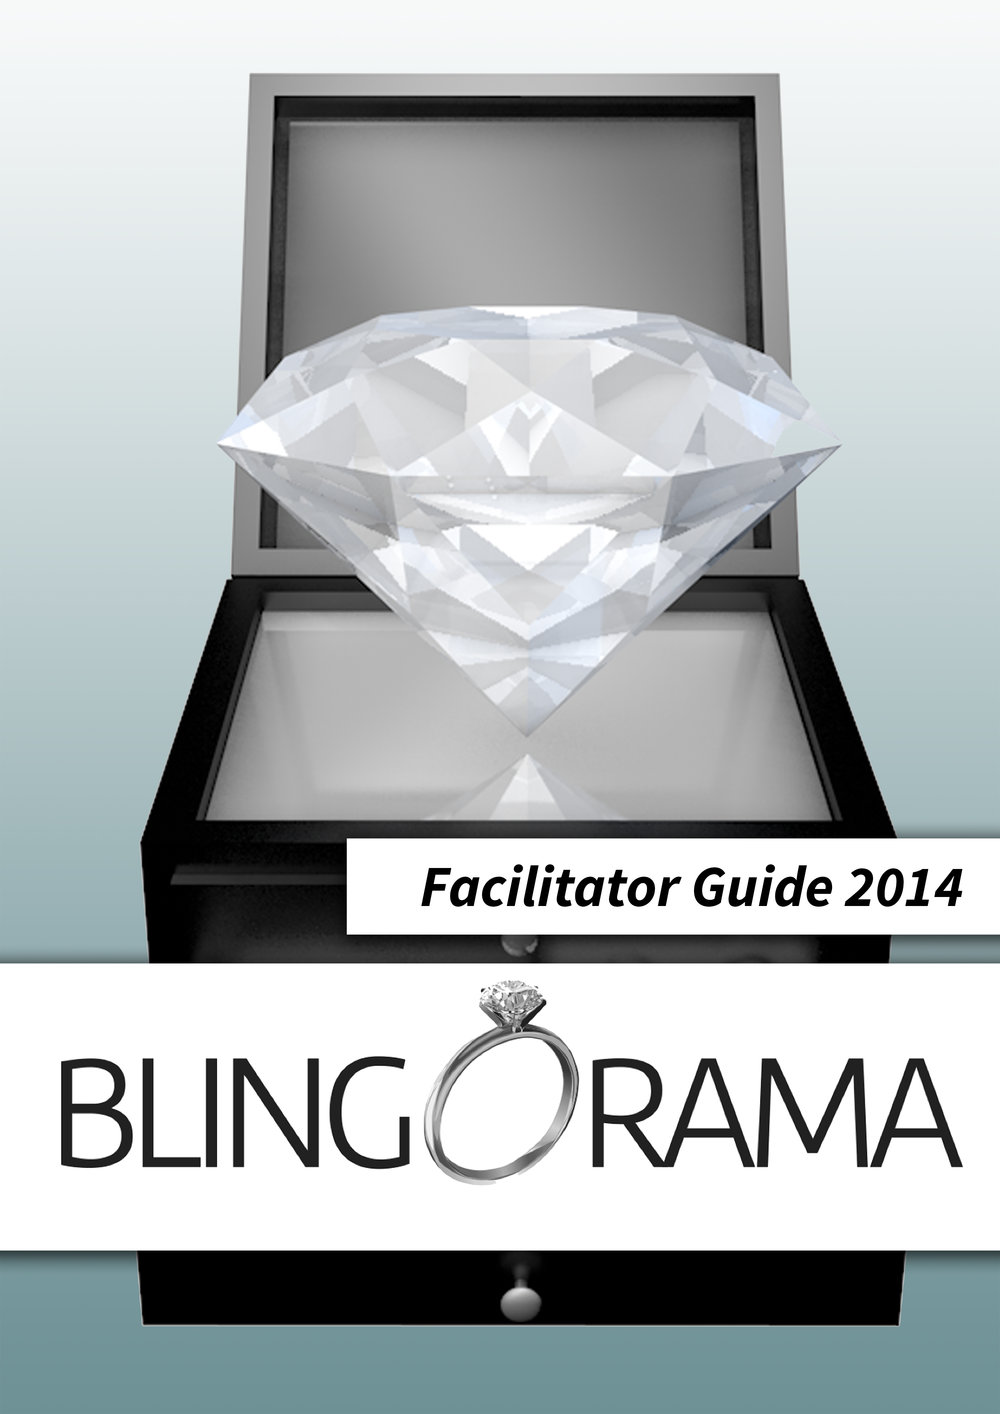 blingorama_facilitator_coverpage_A.jpg